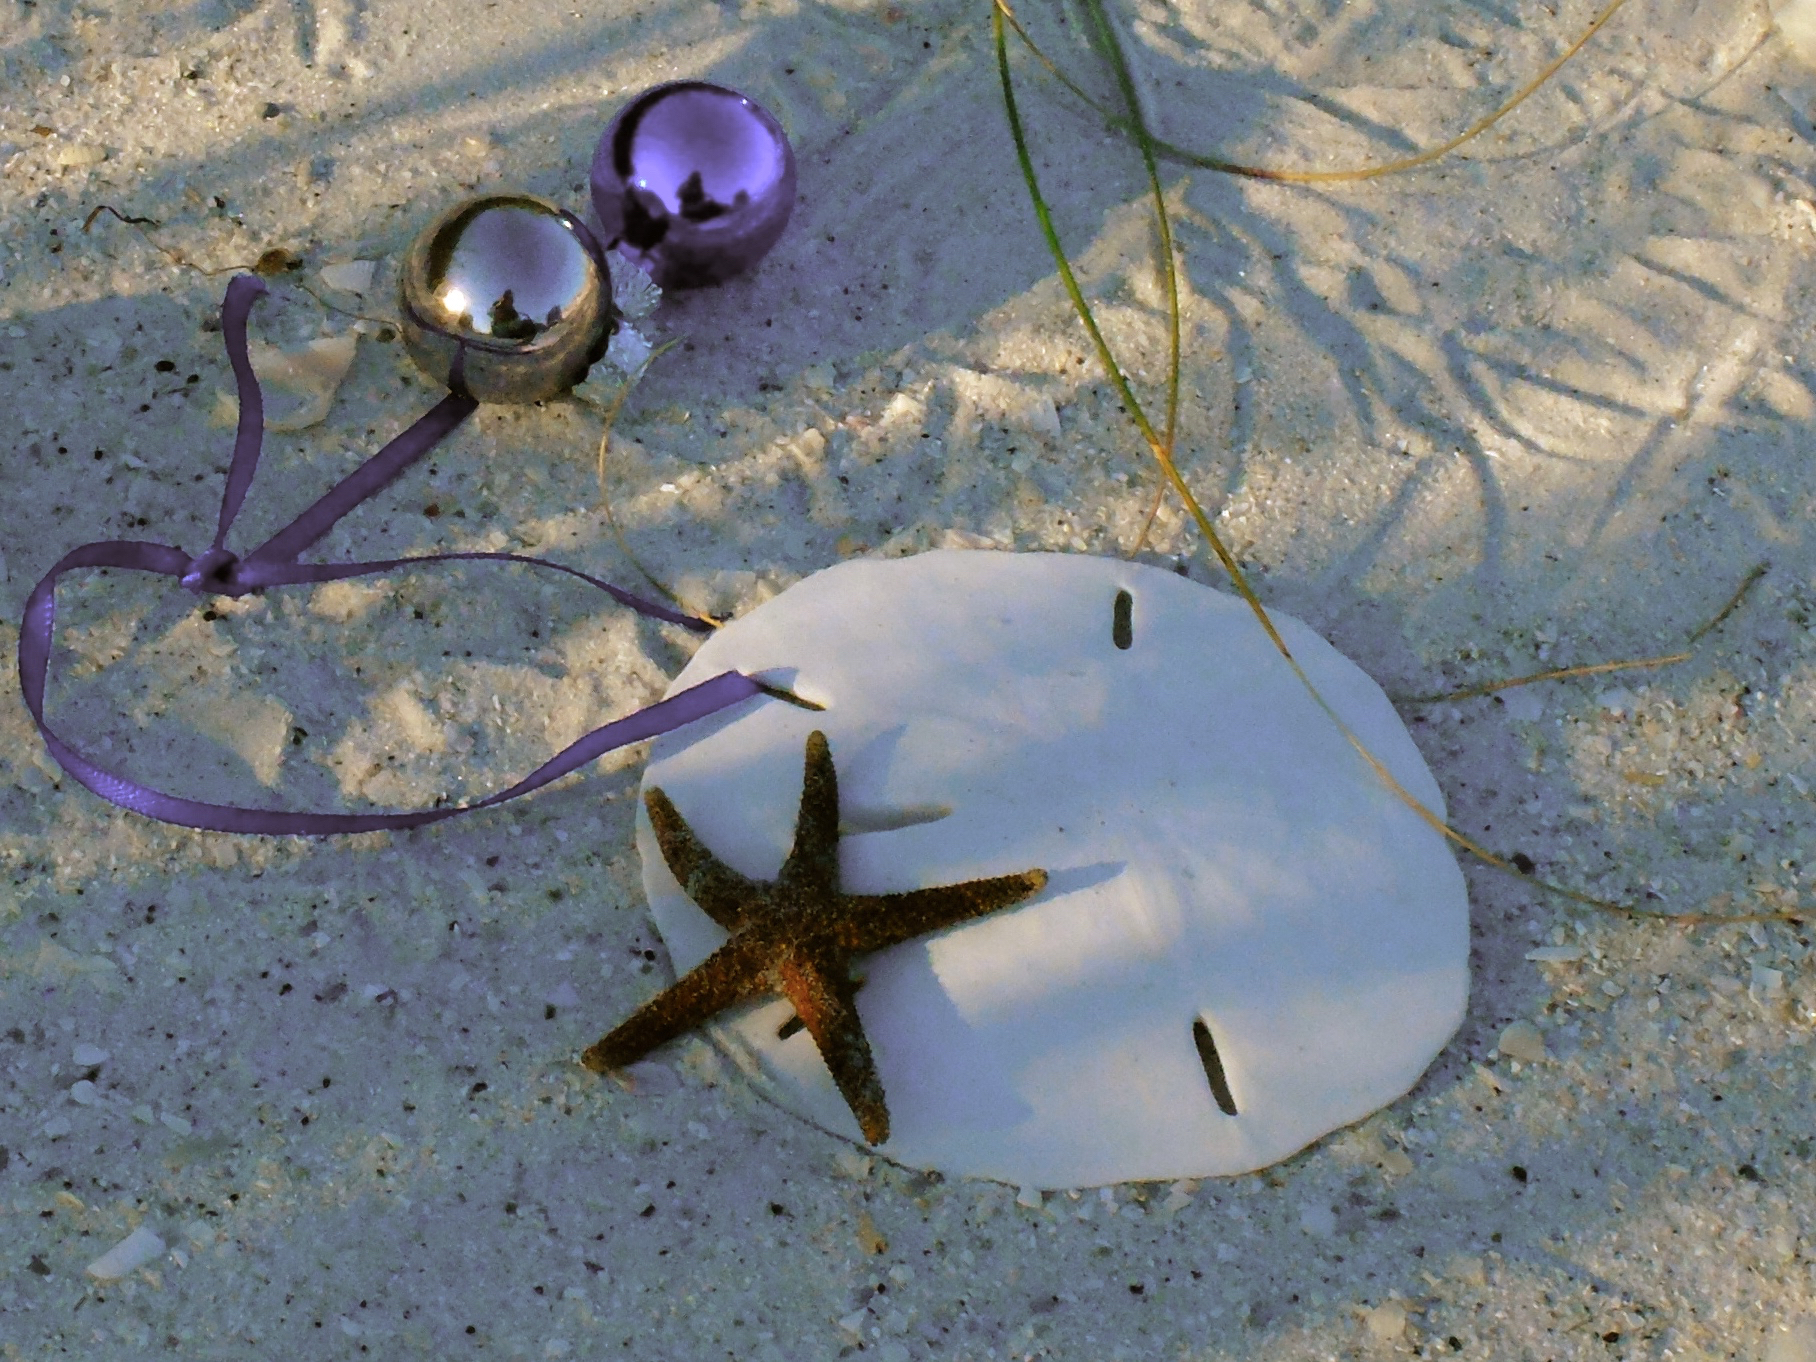 Florida Christmas scene with sand dollar, starfish, and ornaments – photo by Cathy Salustri